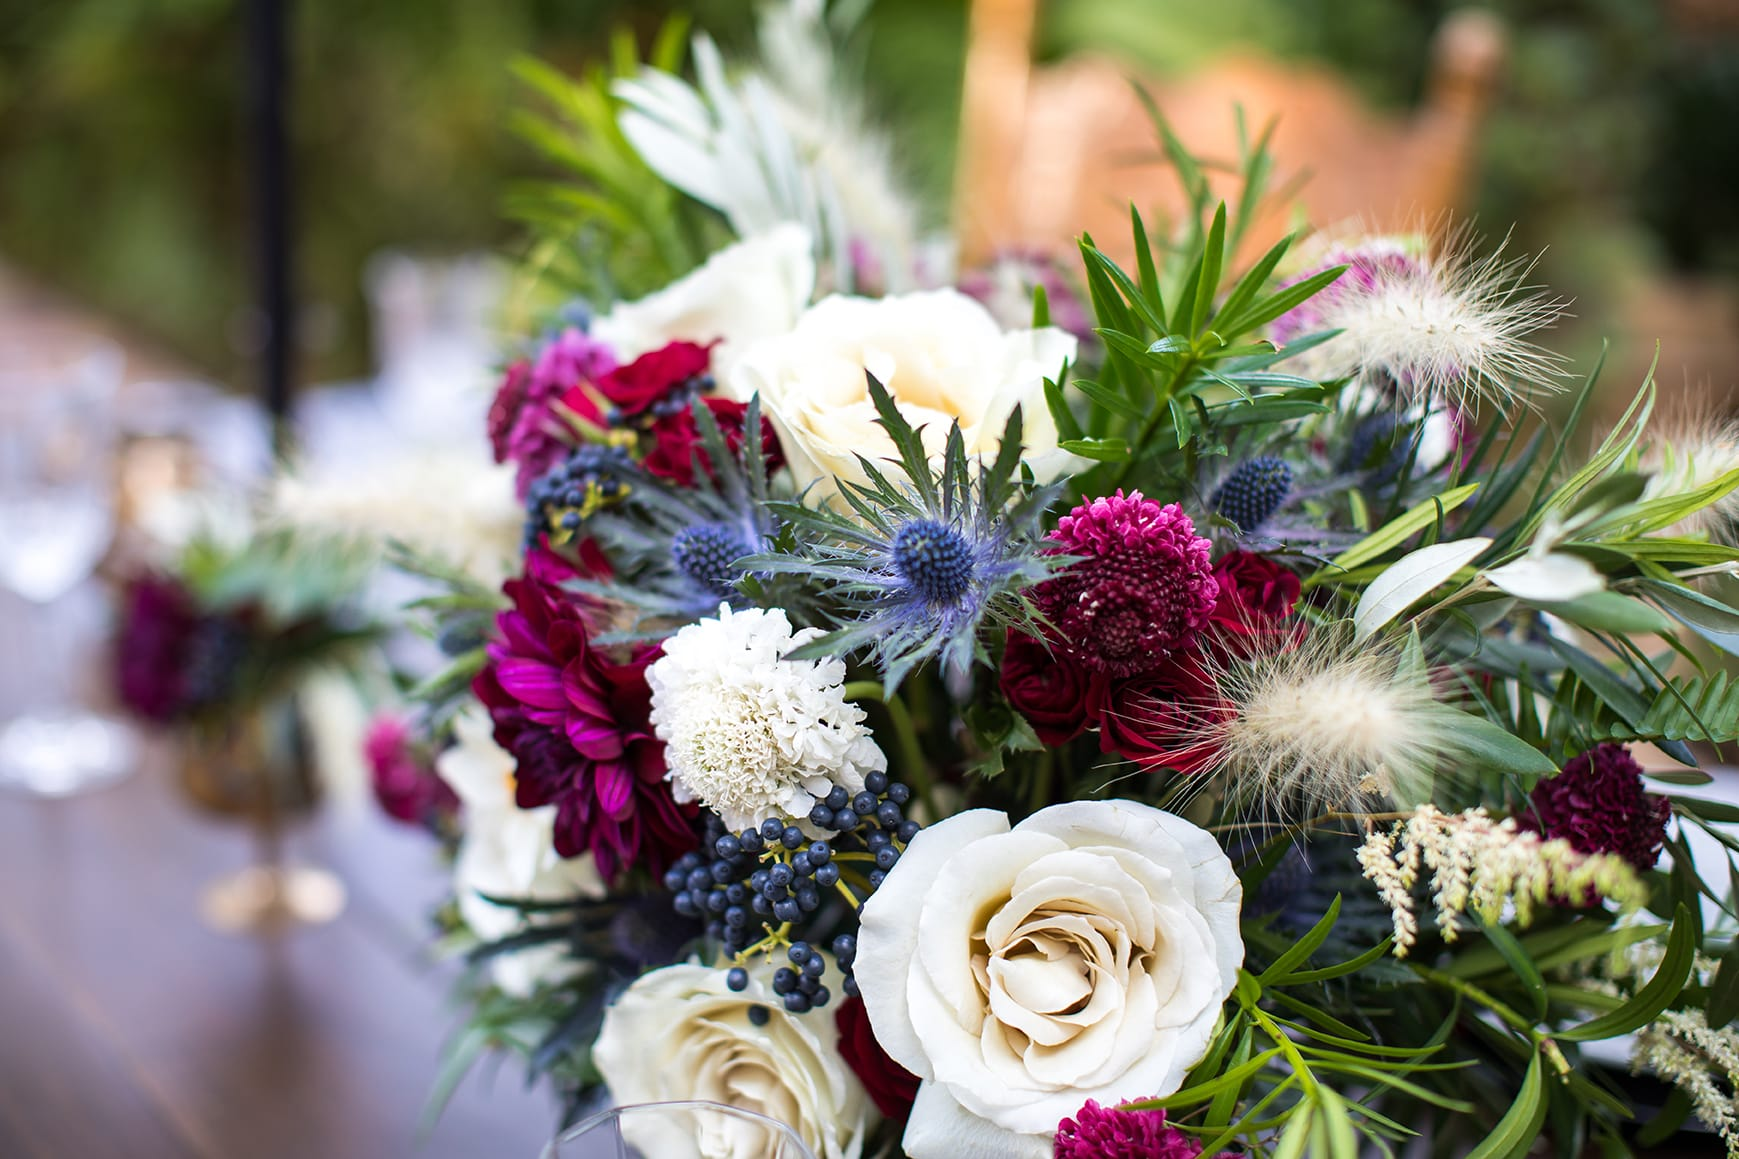 Your Wedding Day Horoscope Inspired by Pantone's Color of the Year, Ultra Violet - Snap Photography Maggie Sottero Styled Shoot